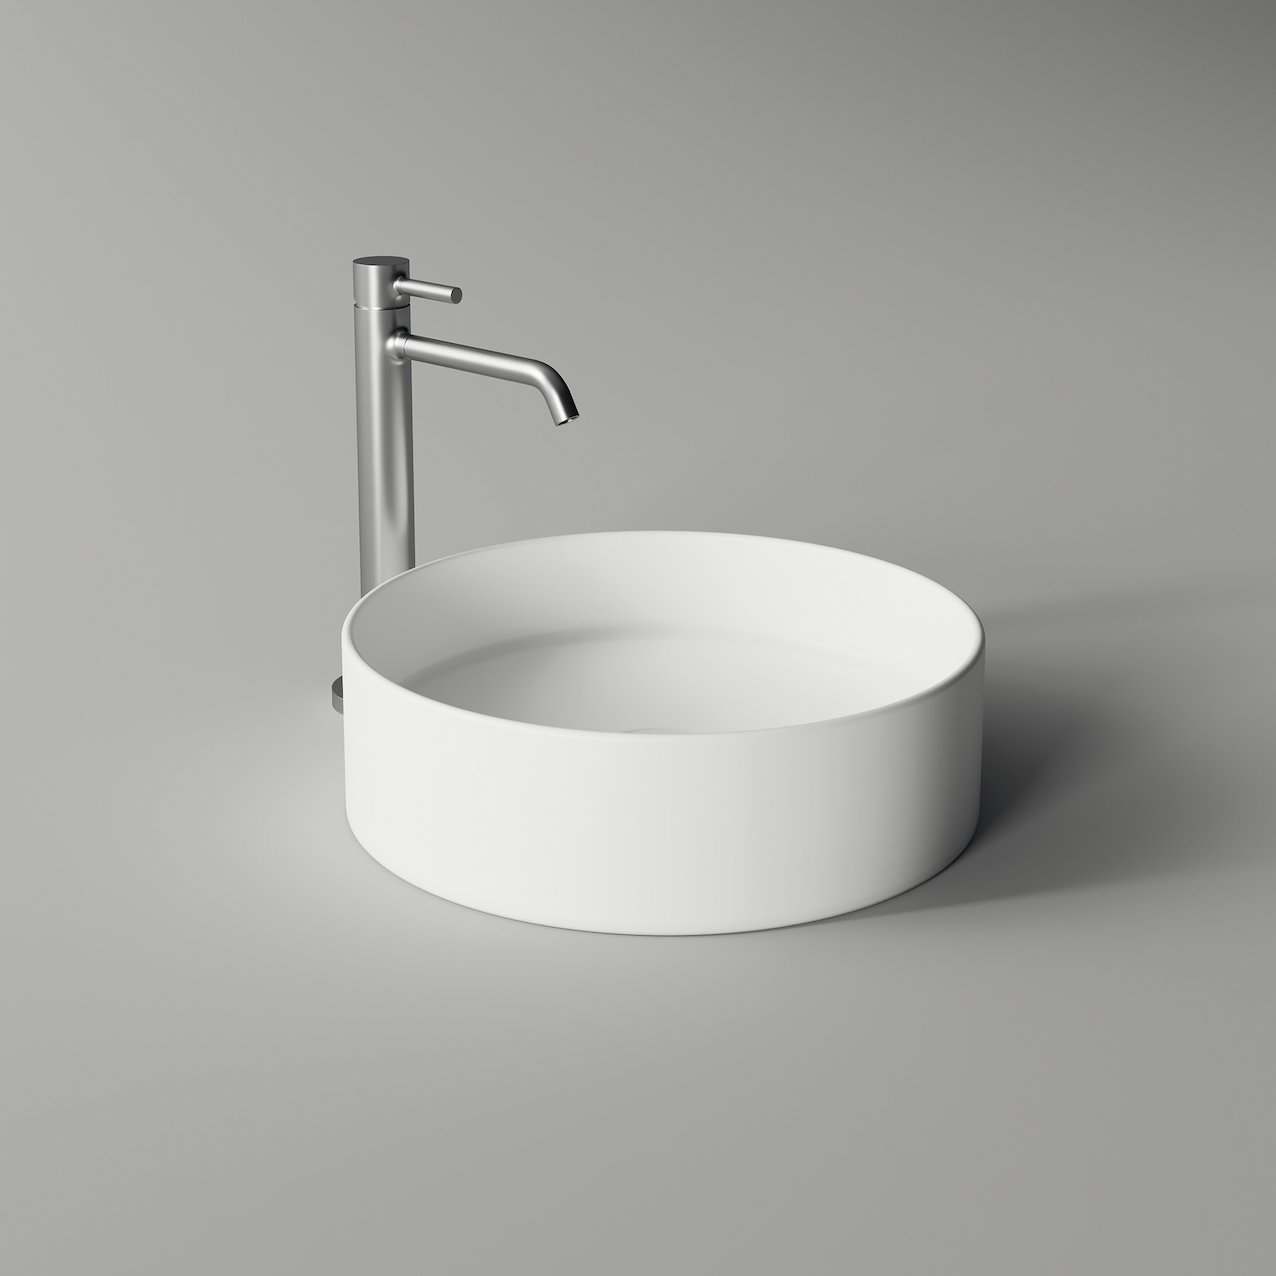 Washbasin HIDE round minimal